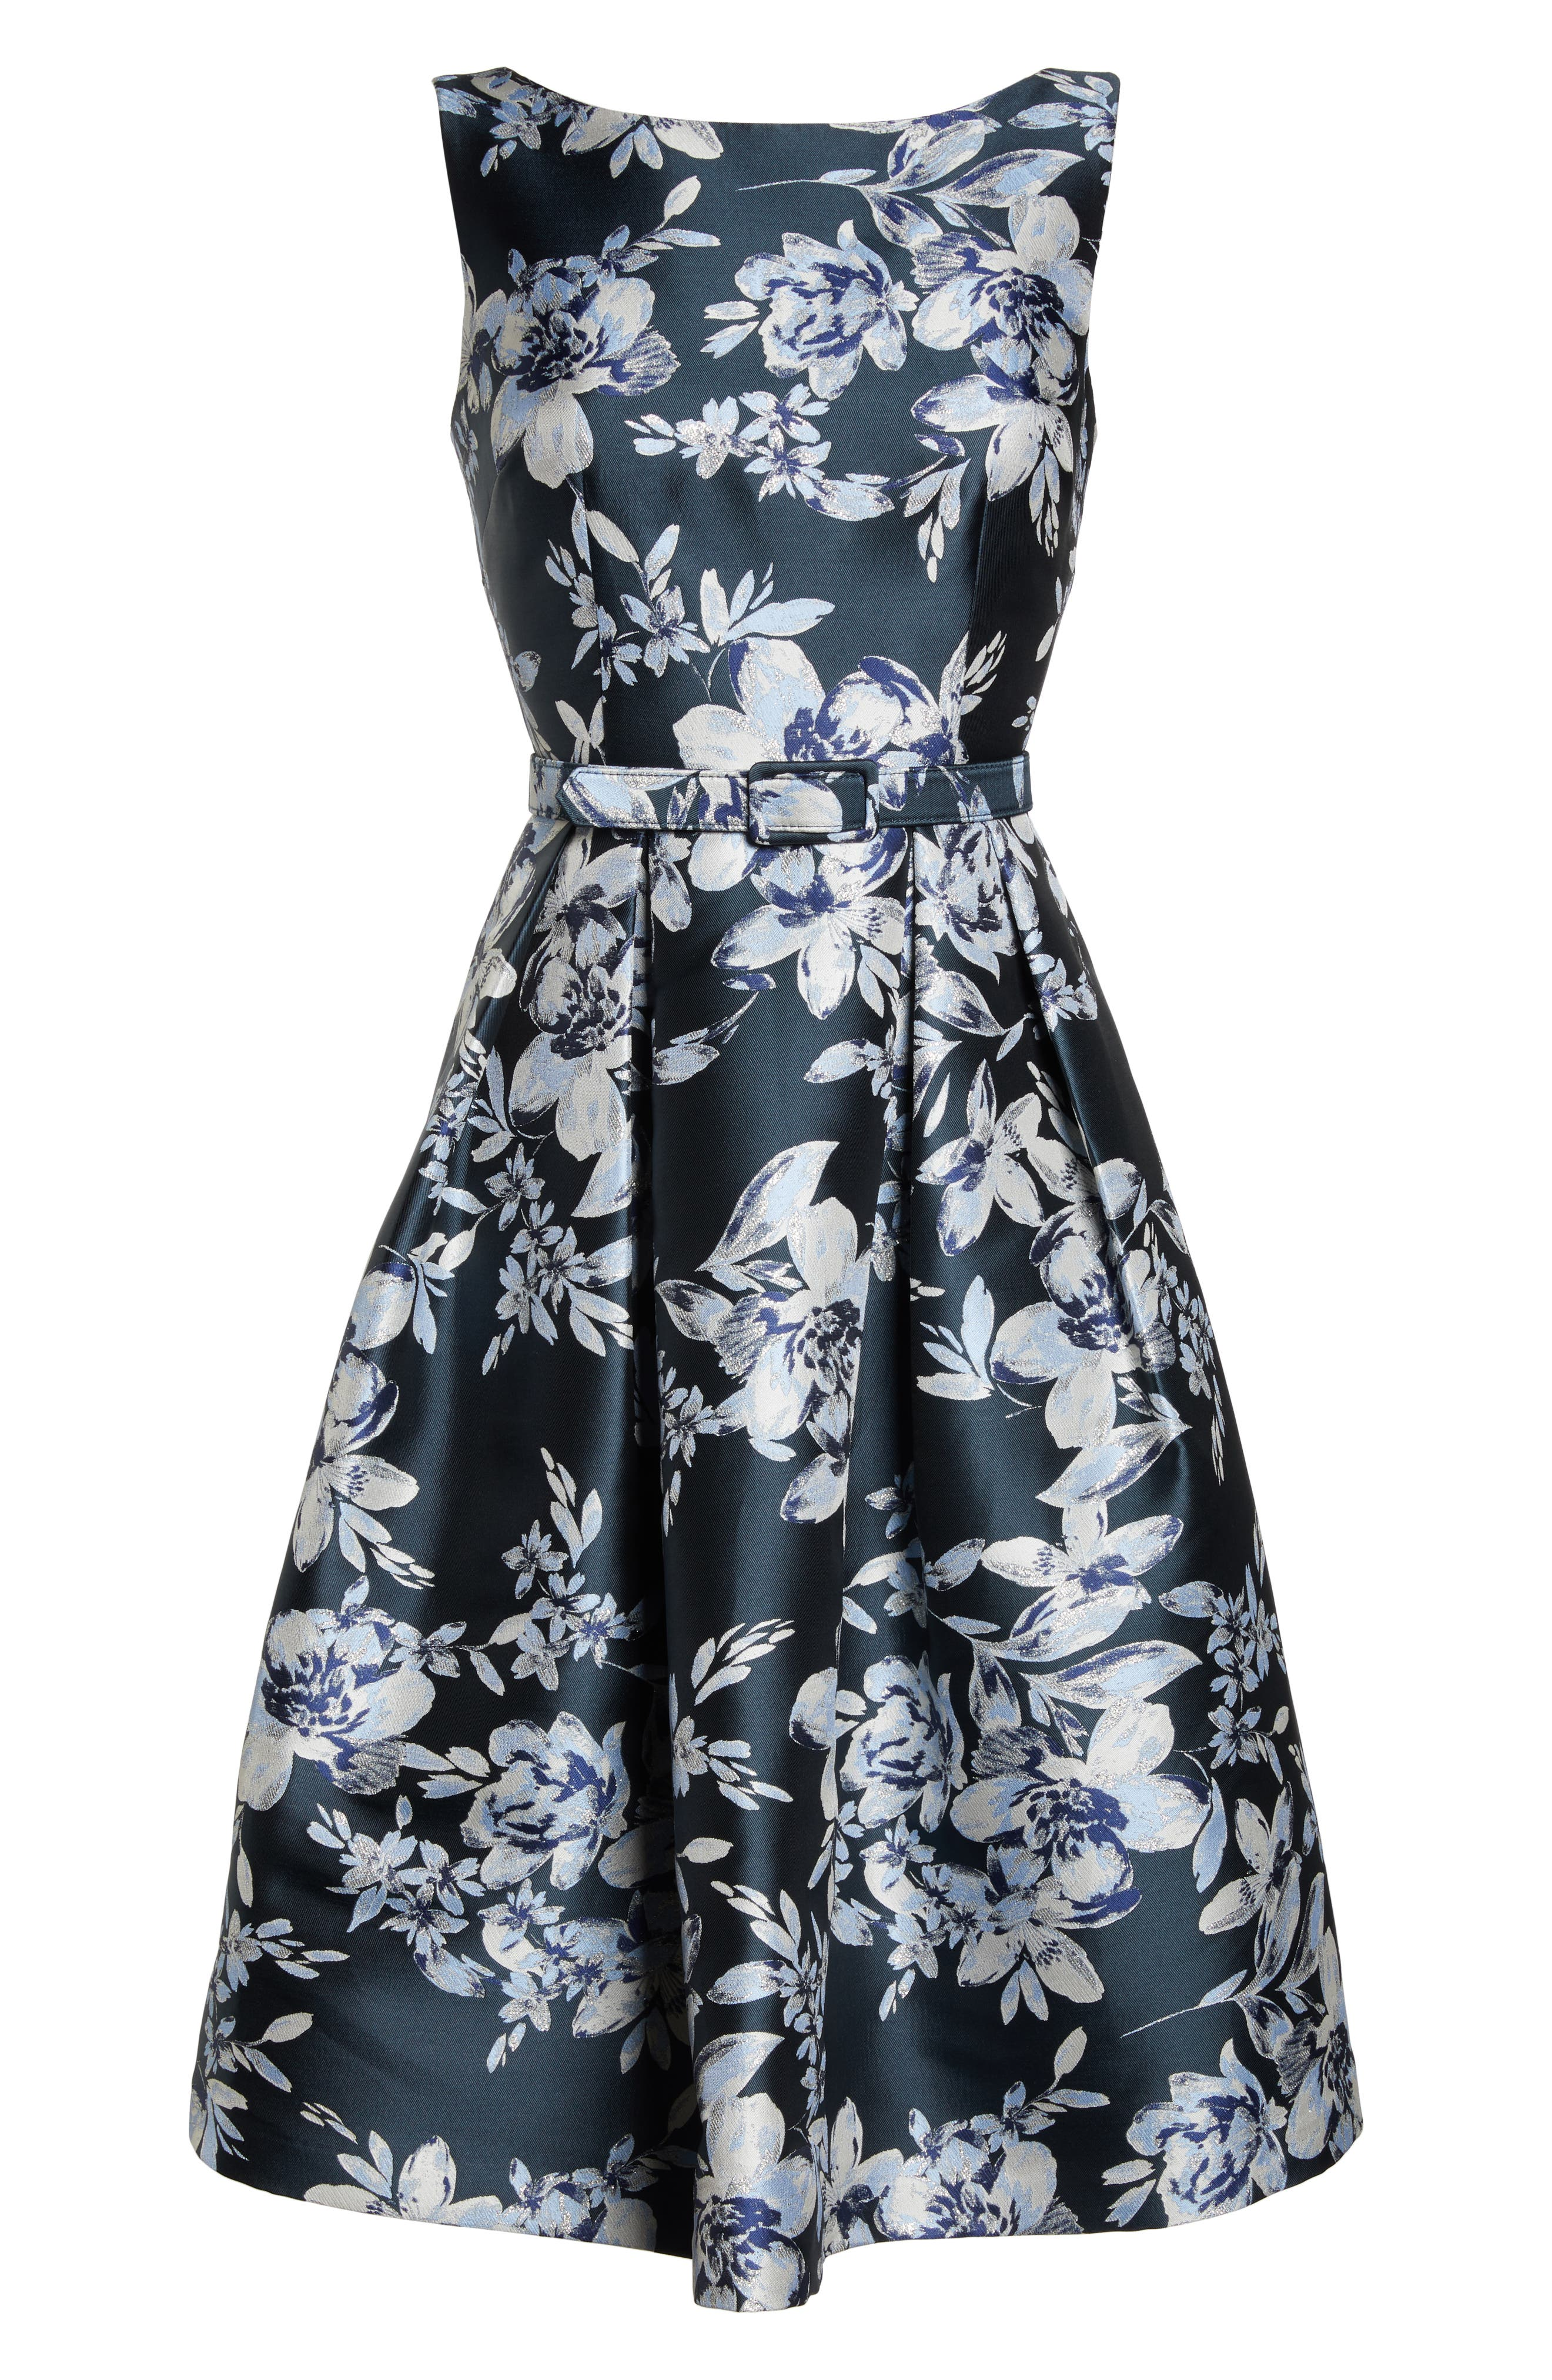 Metallic Floral Belted Fit & Flare Dress,                             Alternate thumbnail 7, color,                             NAVY